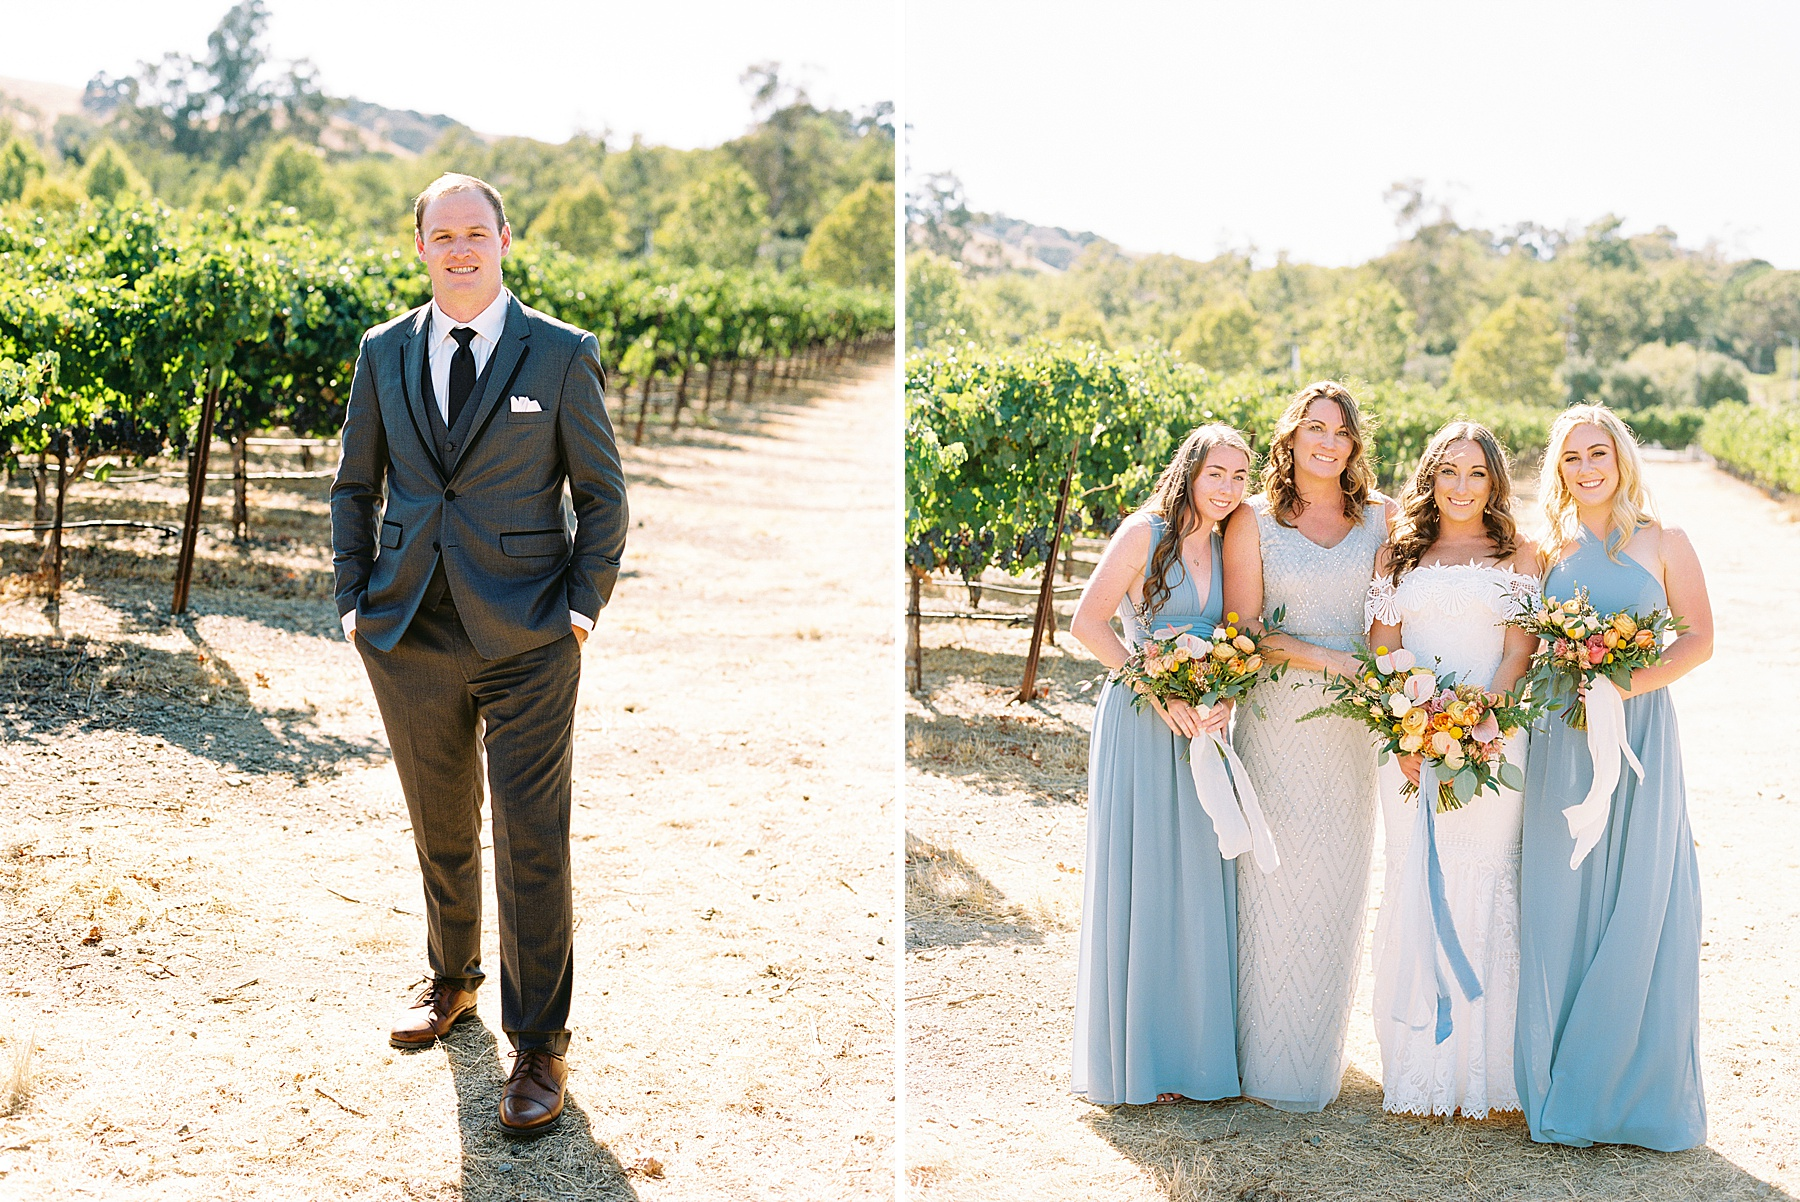 Wente Wedding with A Tropical Color Palette - Ashley & Mike - Featured on Inspired by This - Ashley Baumgartner_0047.jpg